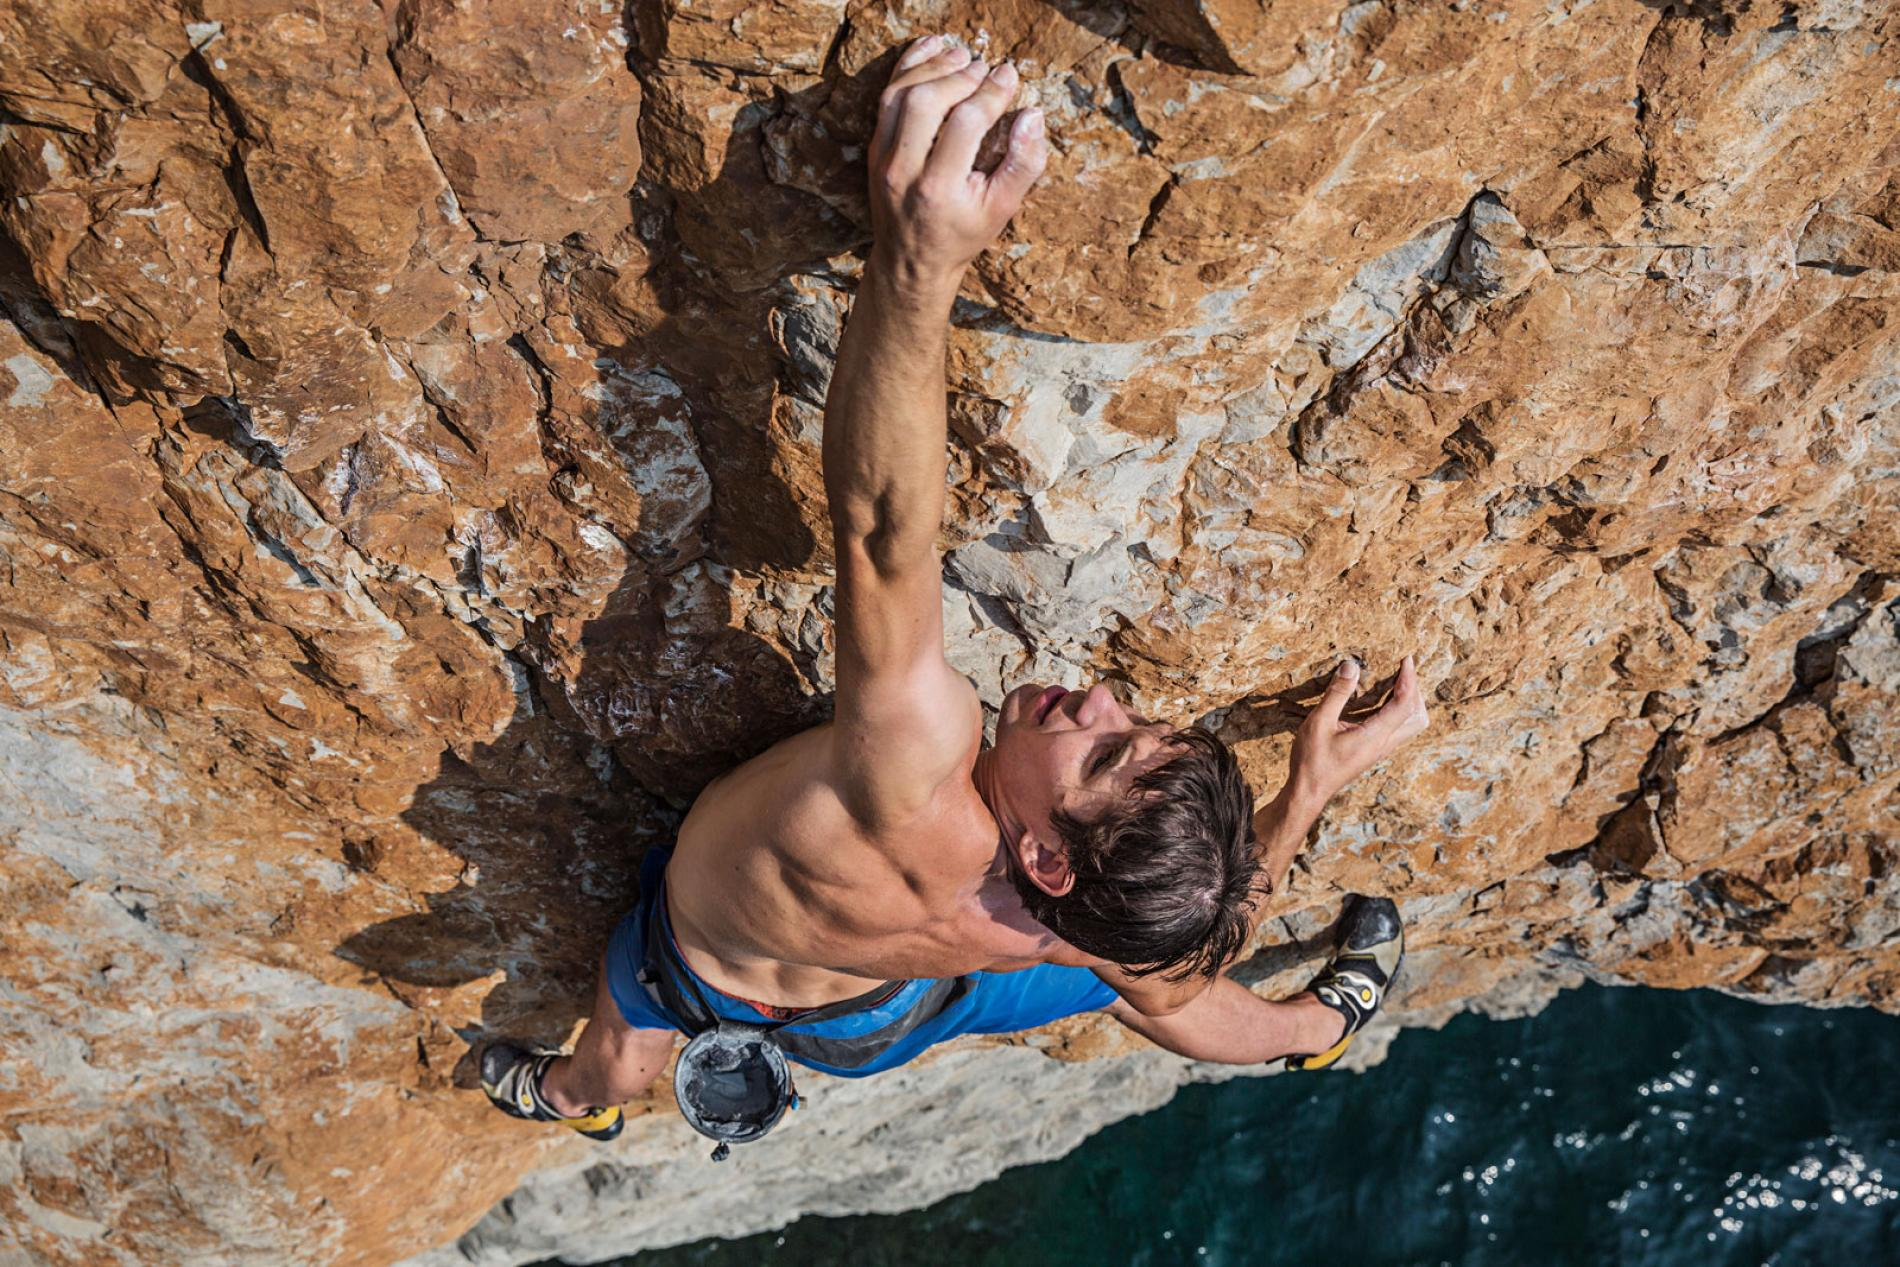 Alex Honnold is the world's best rock climber and does it without eating meat. Credit: Jimmy Chin